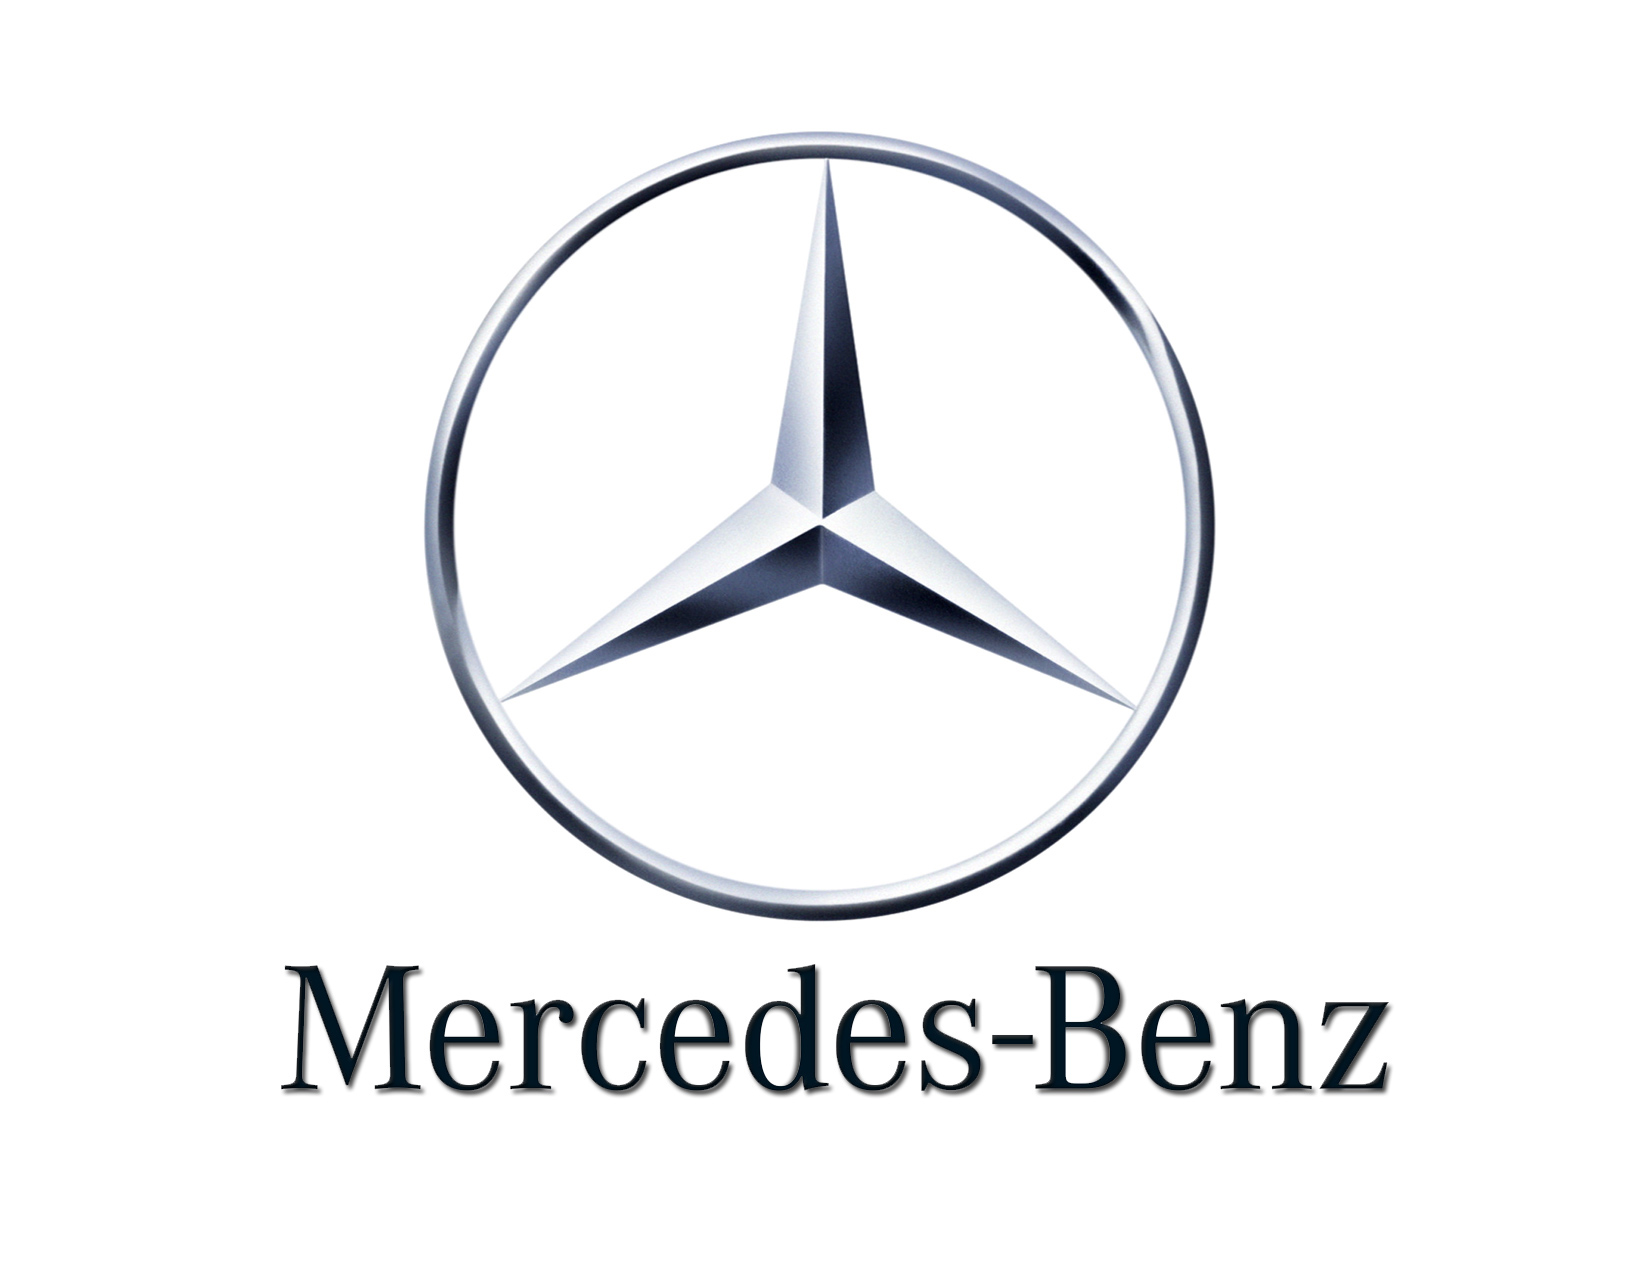 Mercedes benz financial services announces new emerging for Mercede benz financial